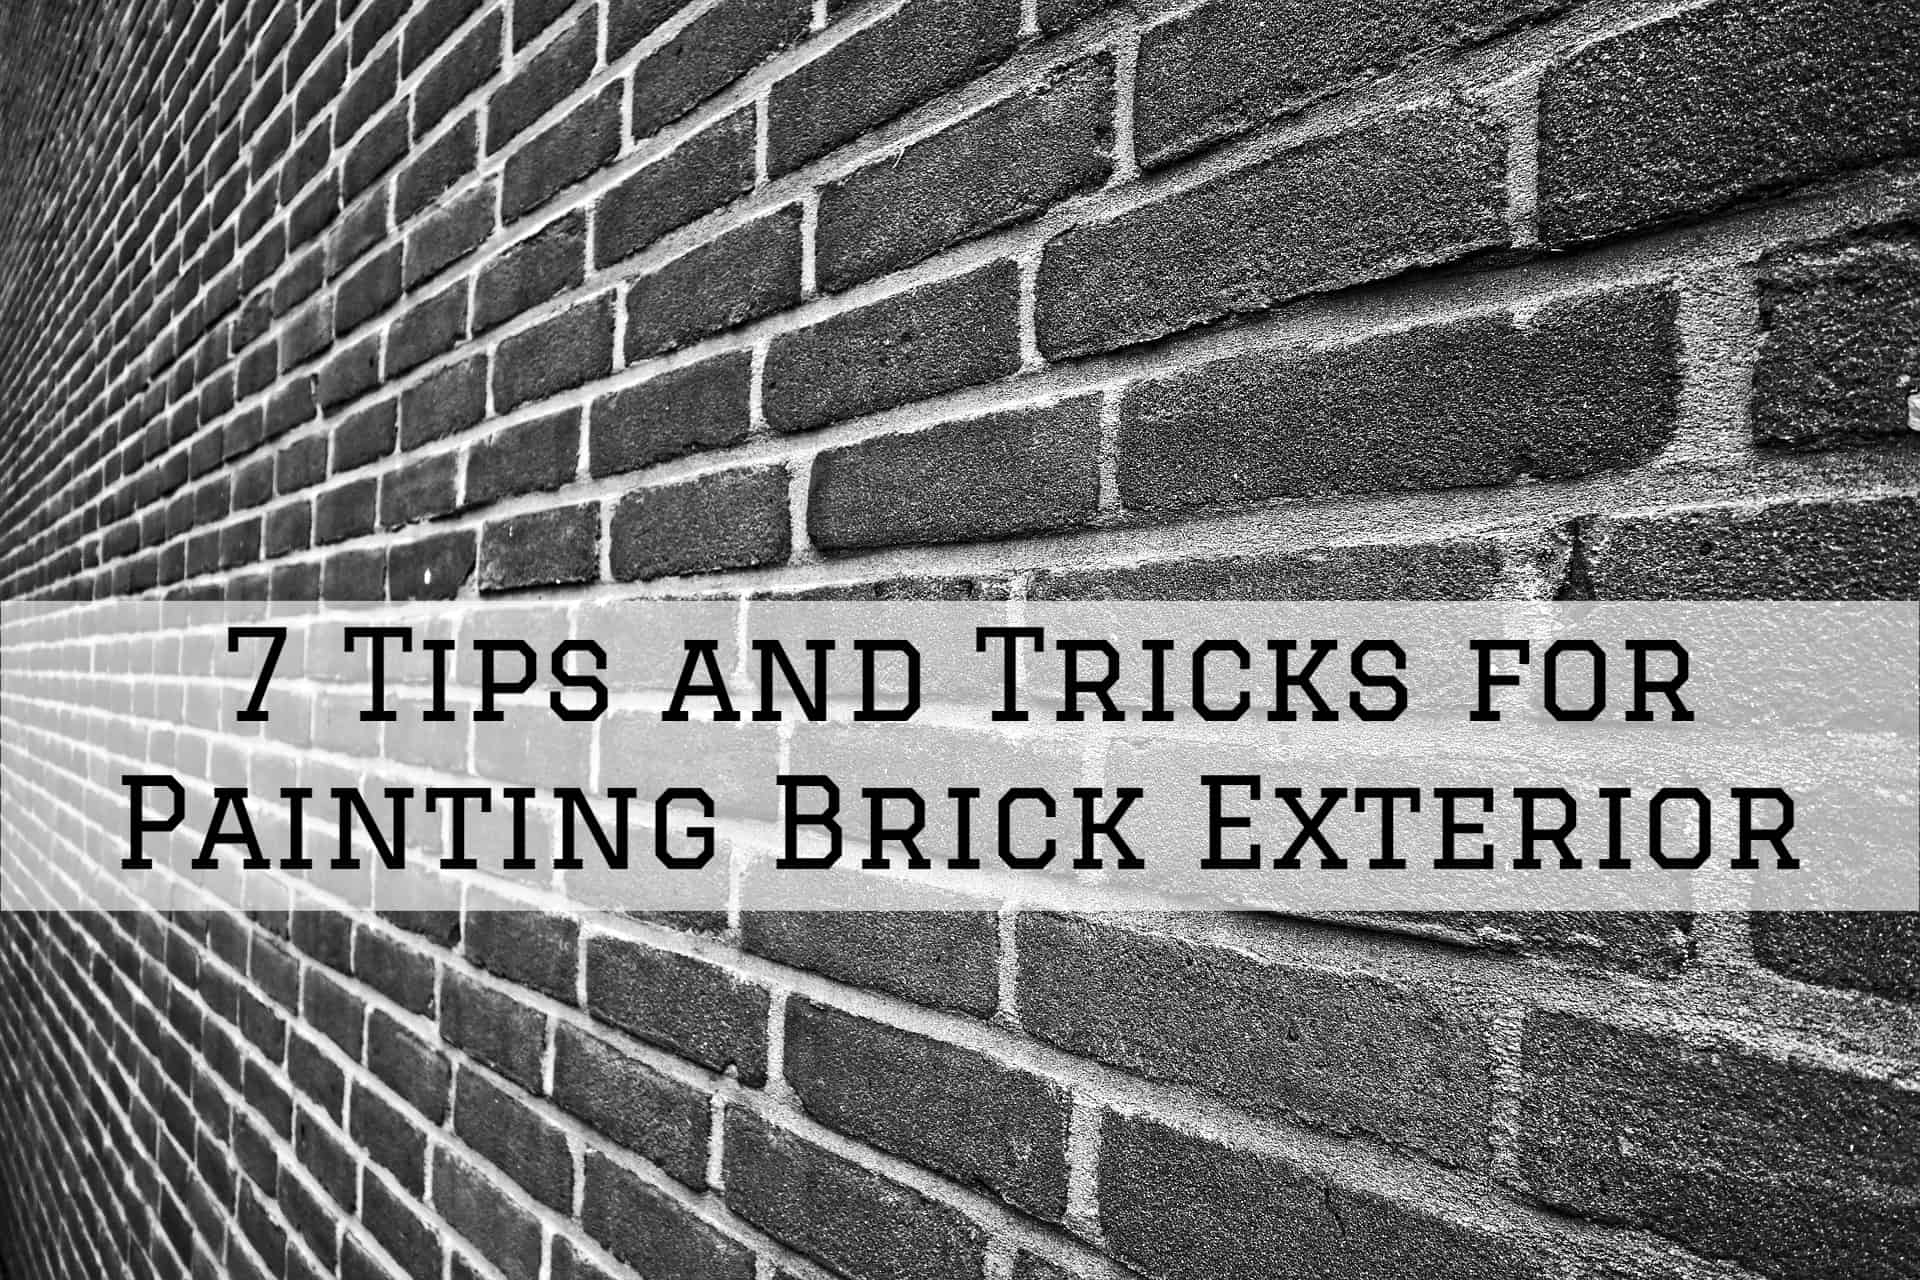 Brush Roll Painting 7 Tips And Tricks For Painting Brick Exterior In Omaha Ne Brush Roll Painting